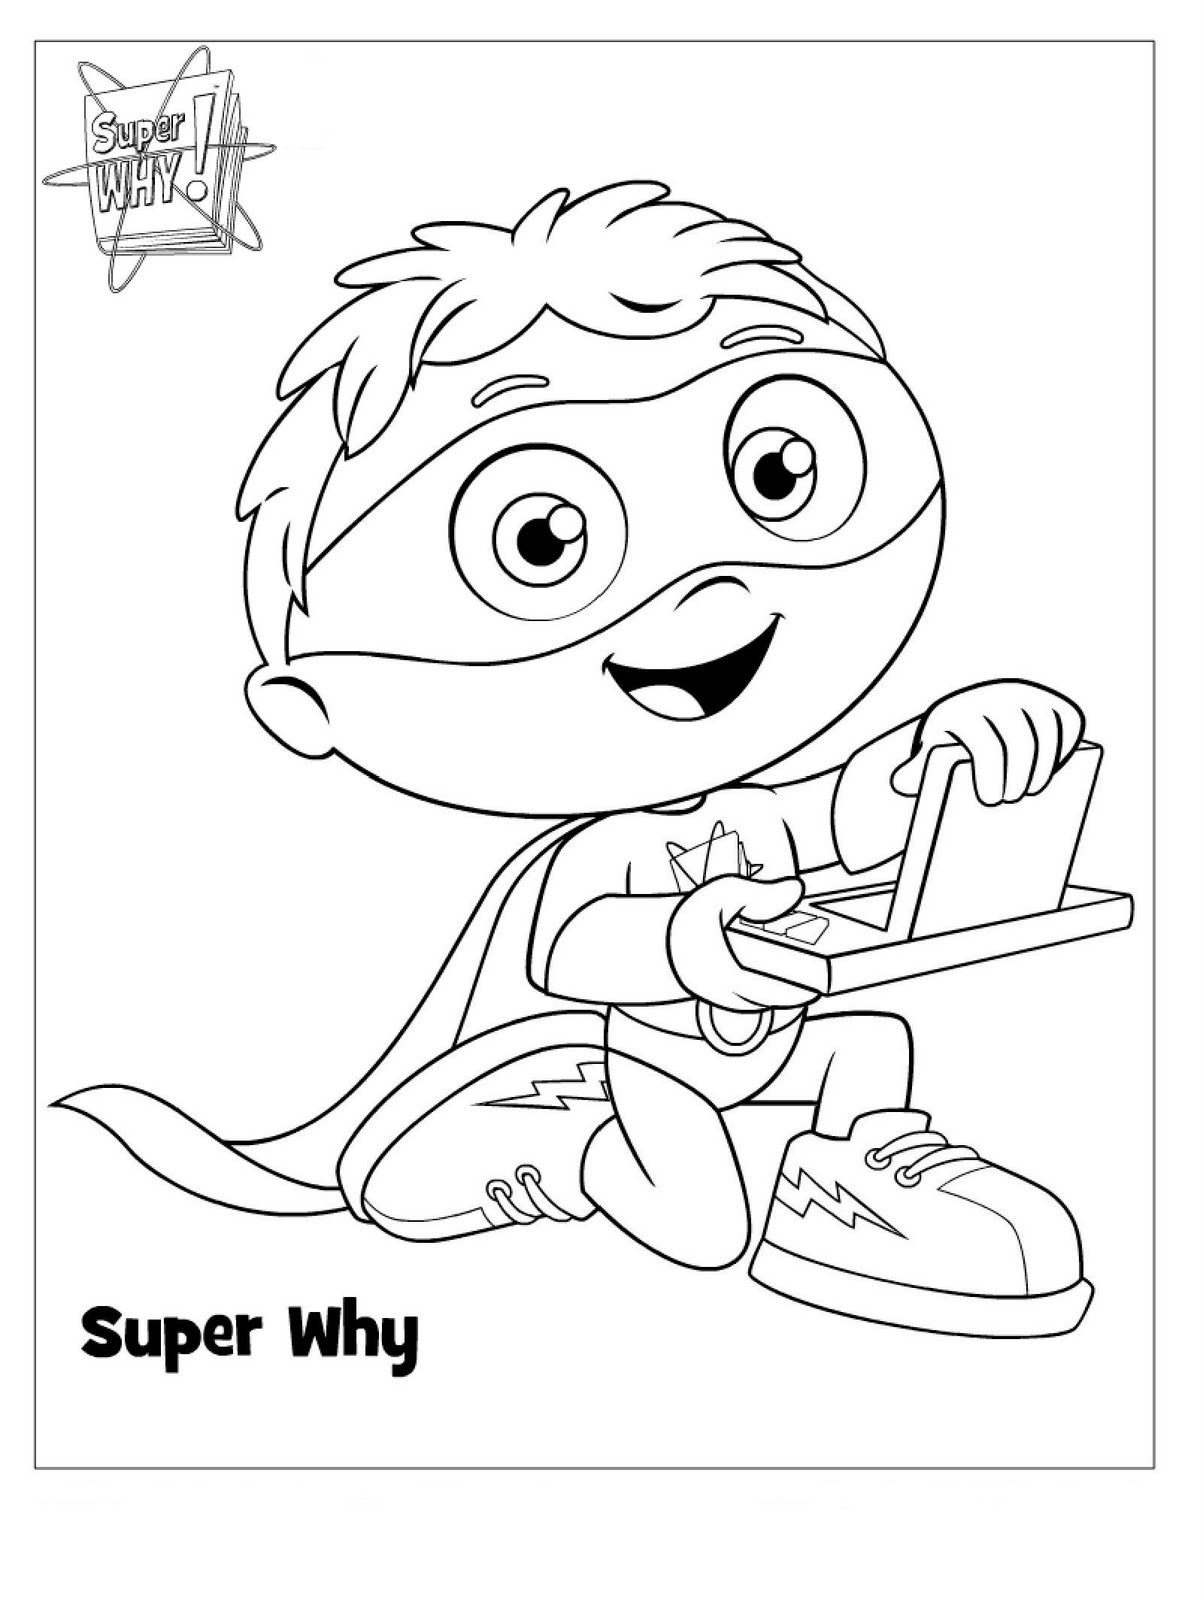 Super why coloring pages best coloring pages for kids for Coloring pages t